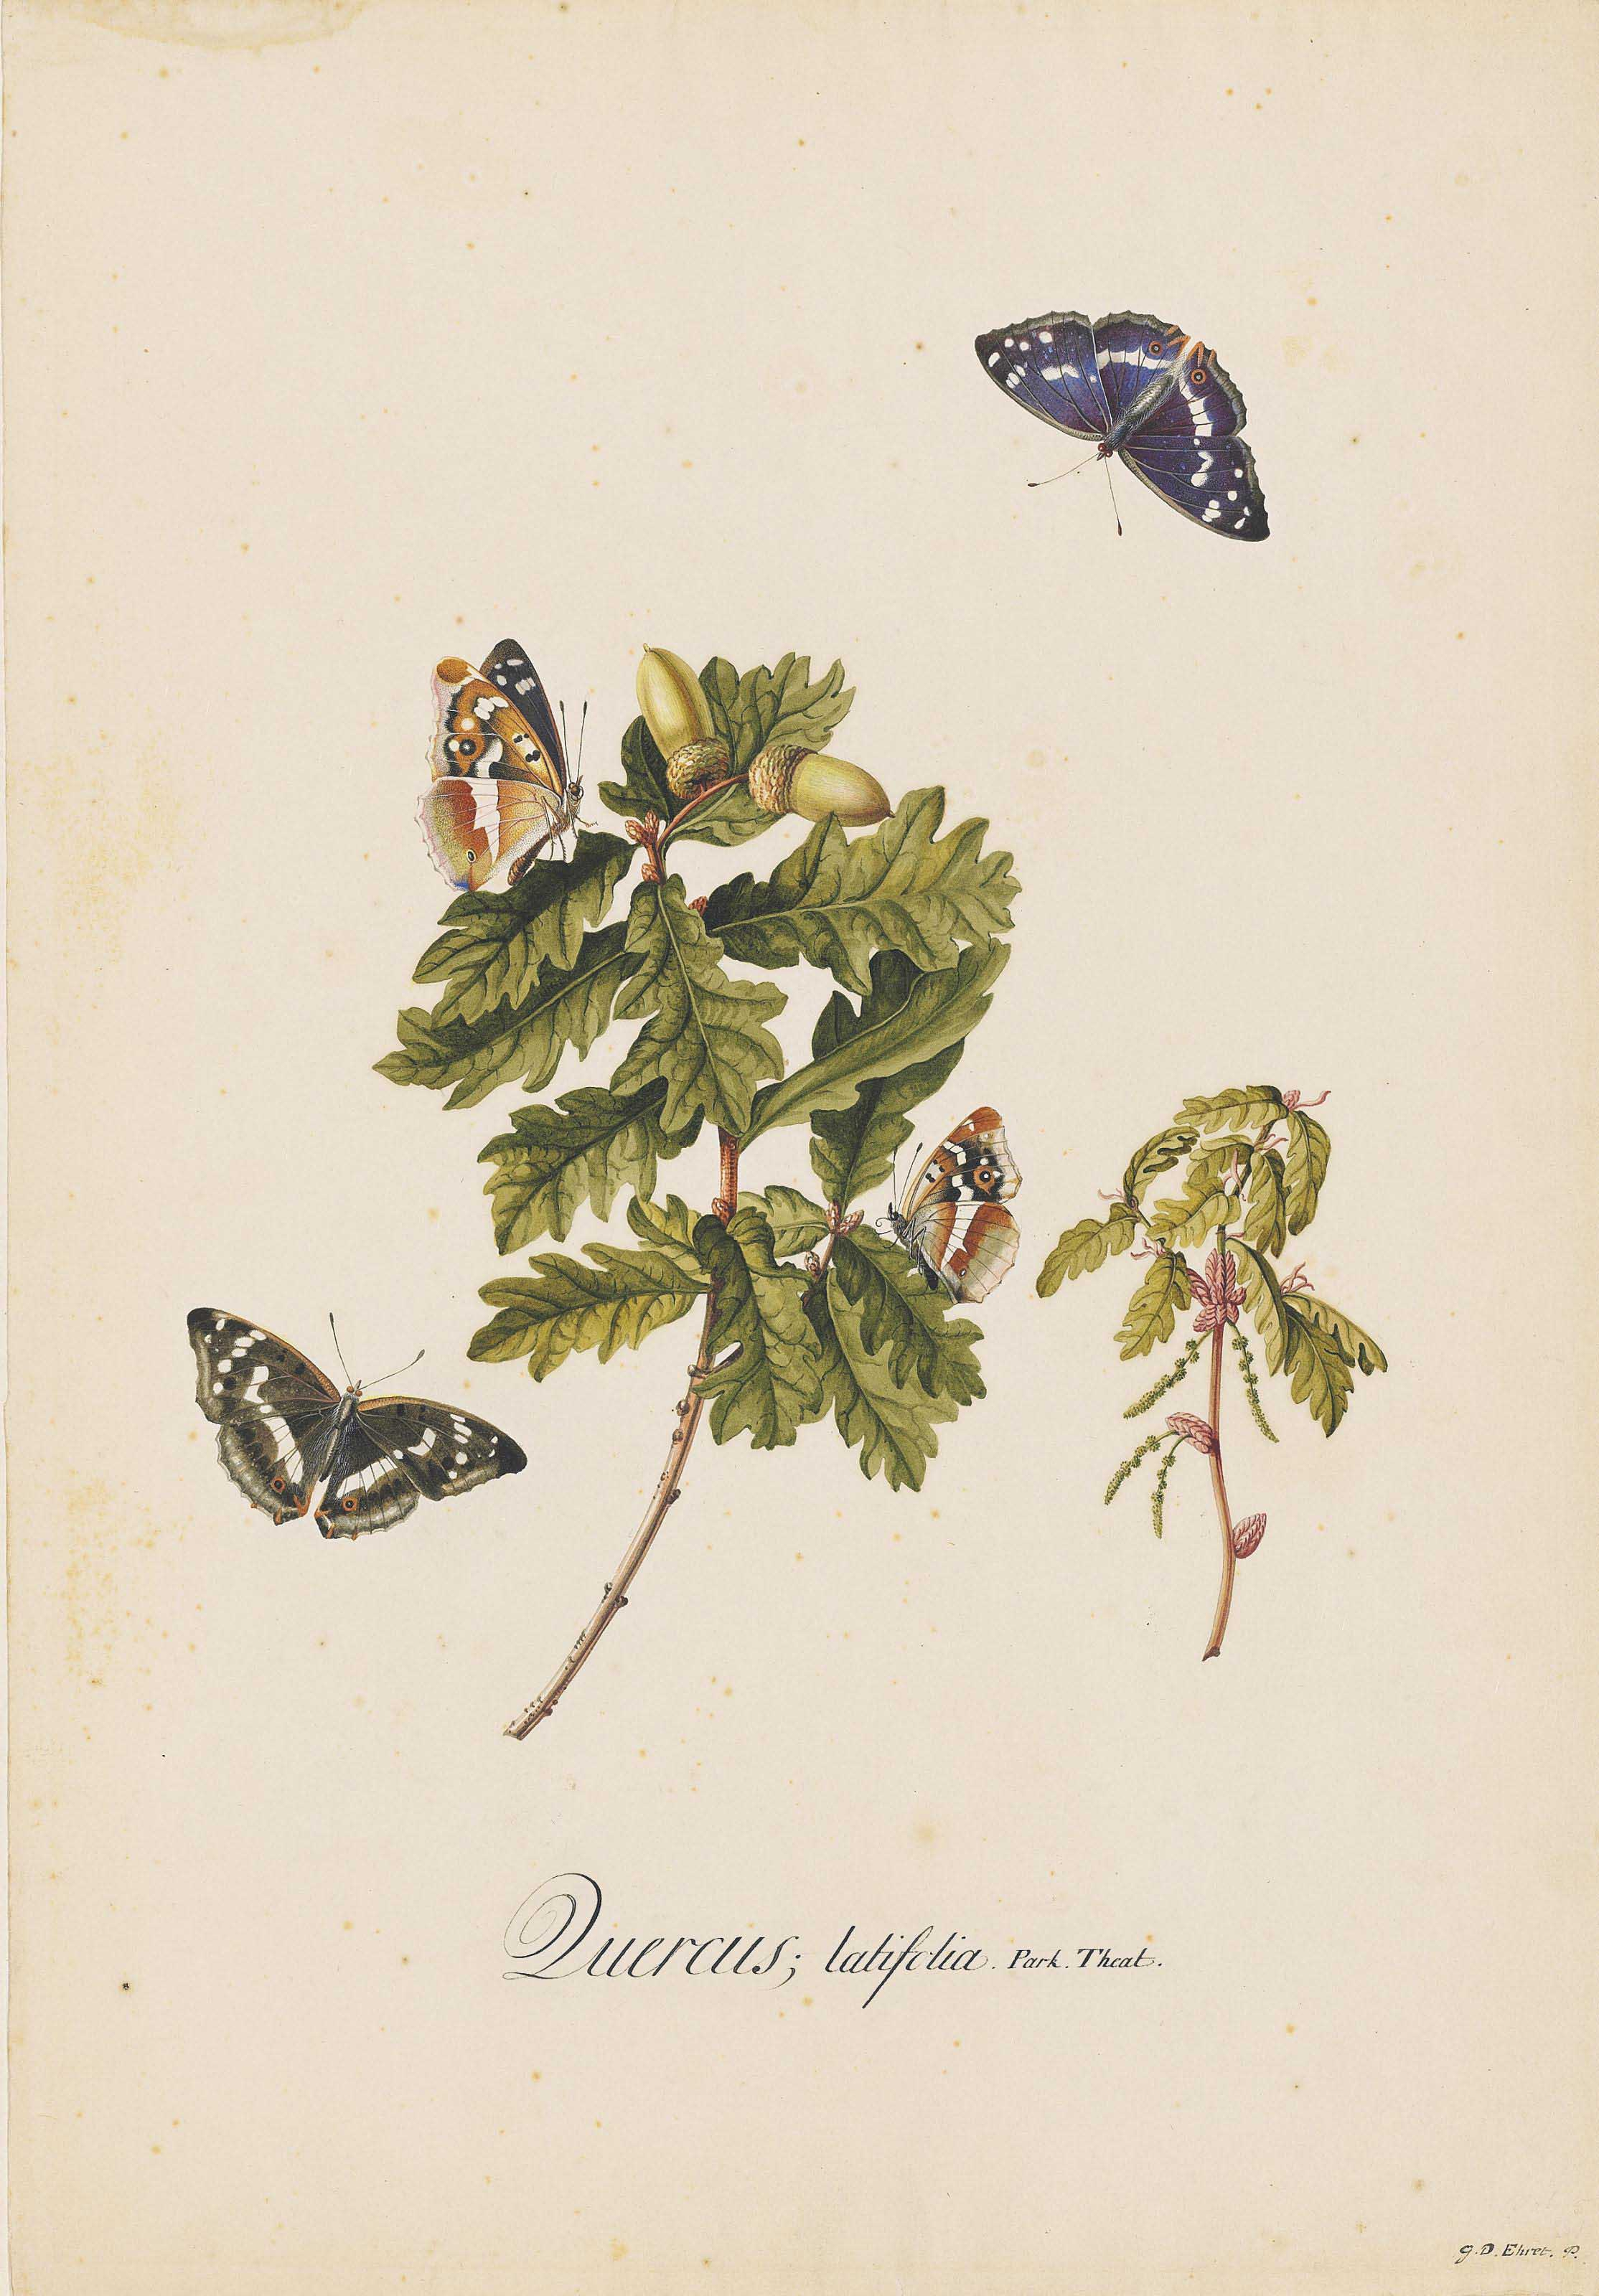 Broad-leaved oak clippings (Quercus latifolia) with male and female Purple Emperor butterflies (Apatura iris), their upperwings and underwings displayed